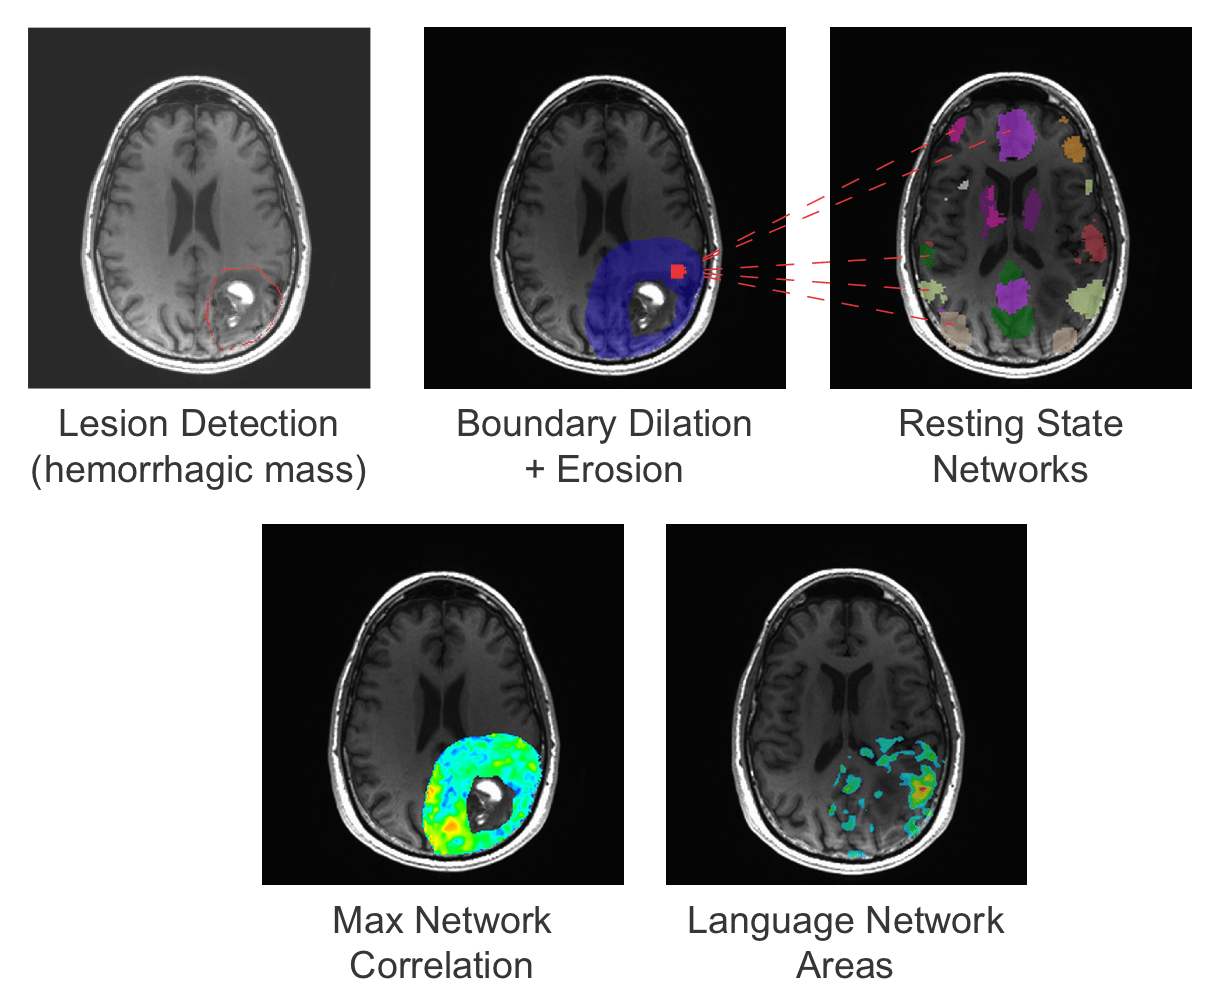 Functional Mapping of Intracranial Tumors